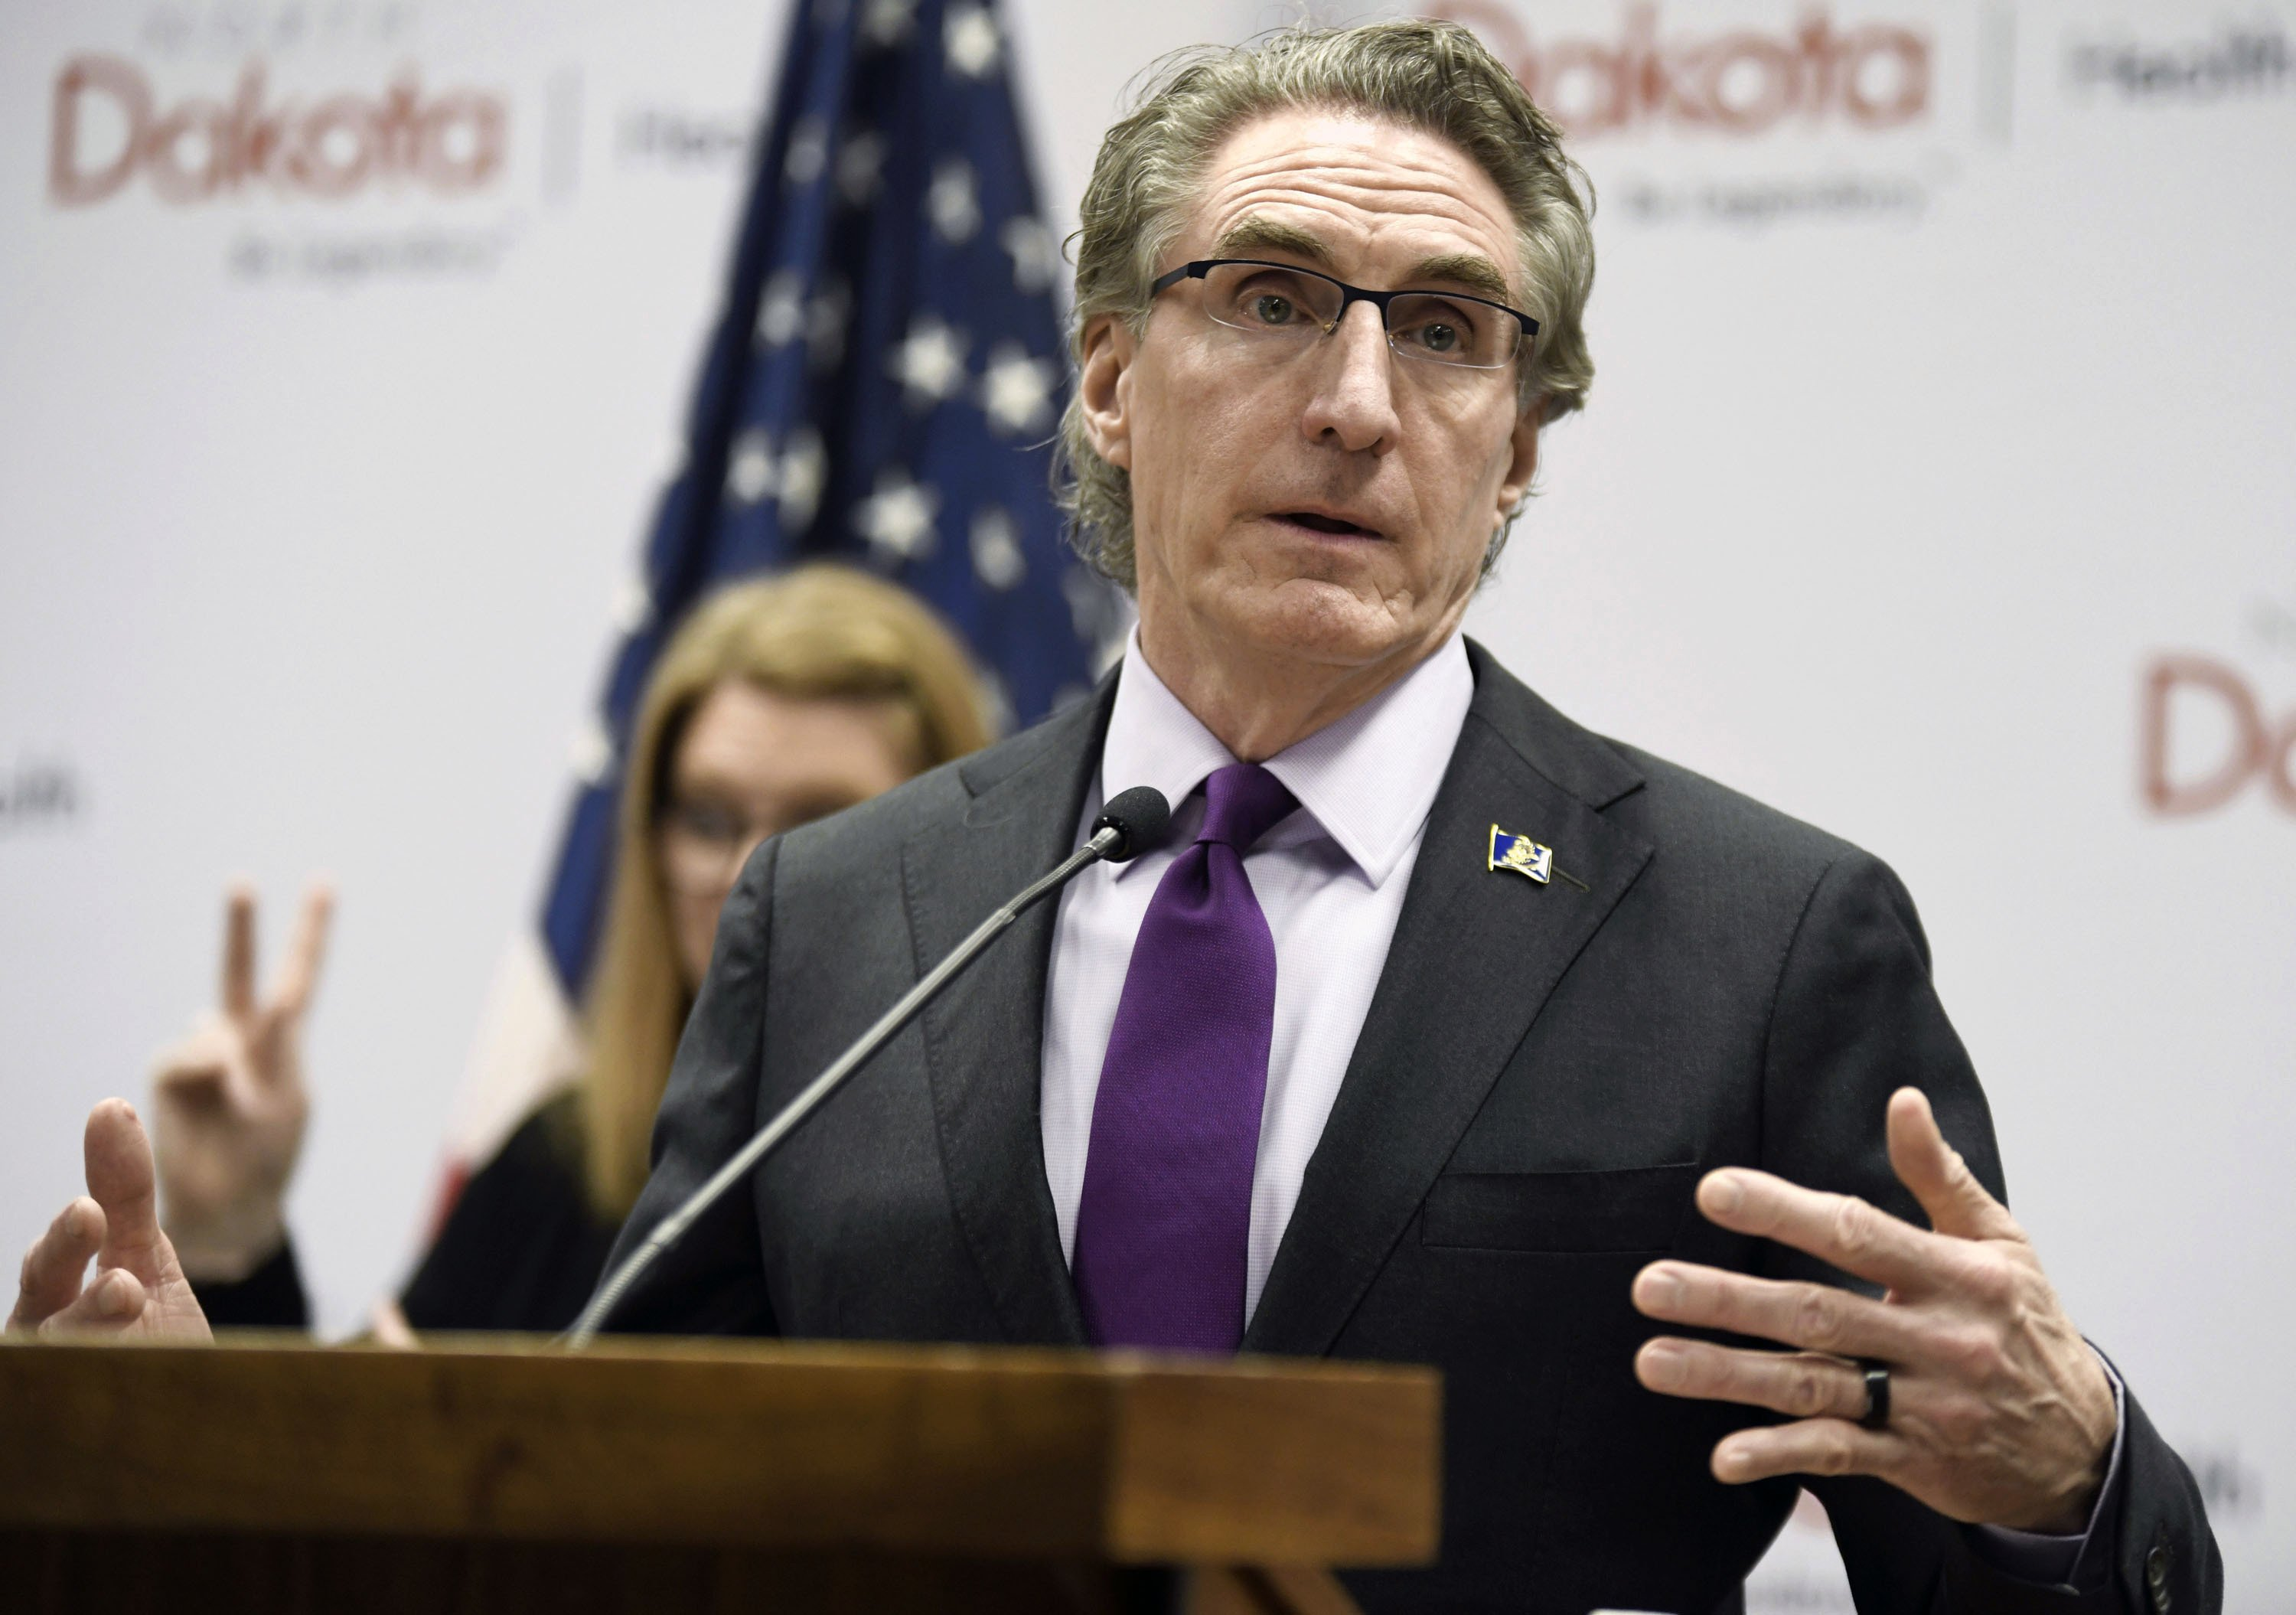 North Dakota governor changes tack and issues mask mandate – The Associated Press